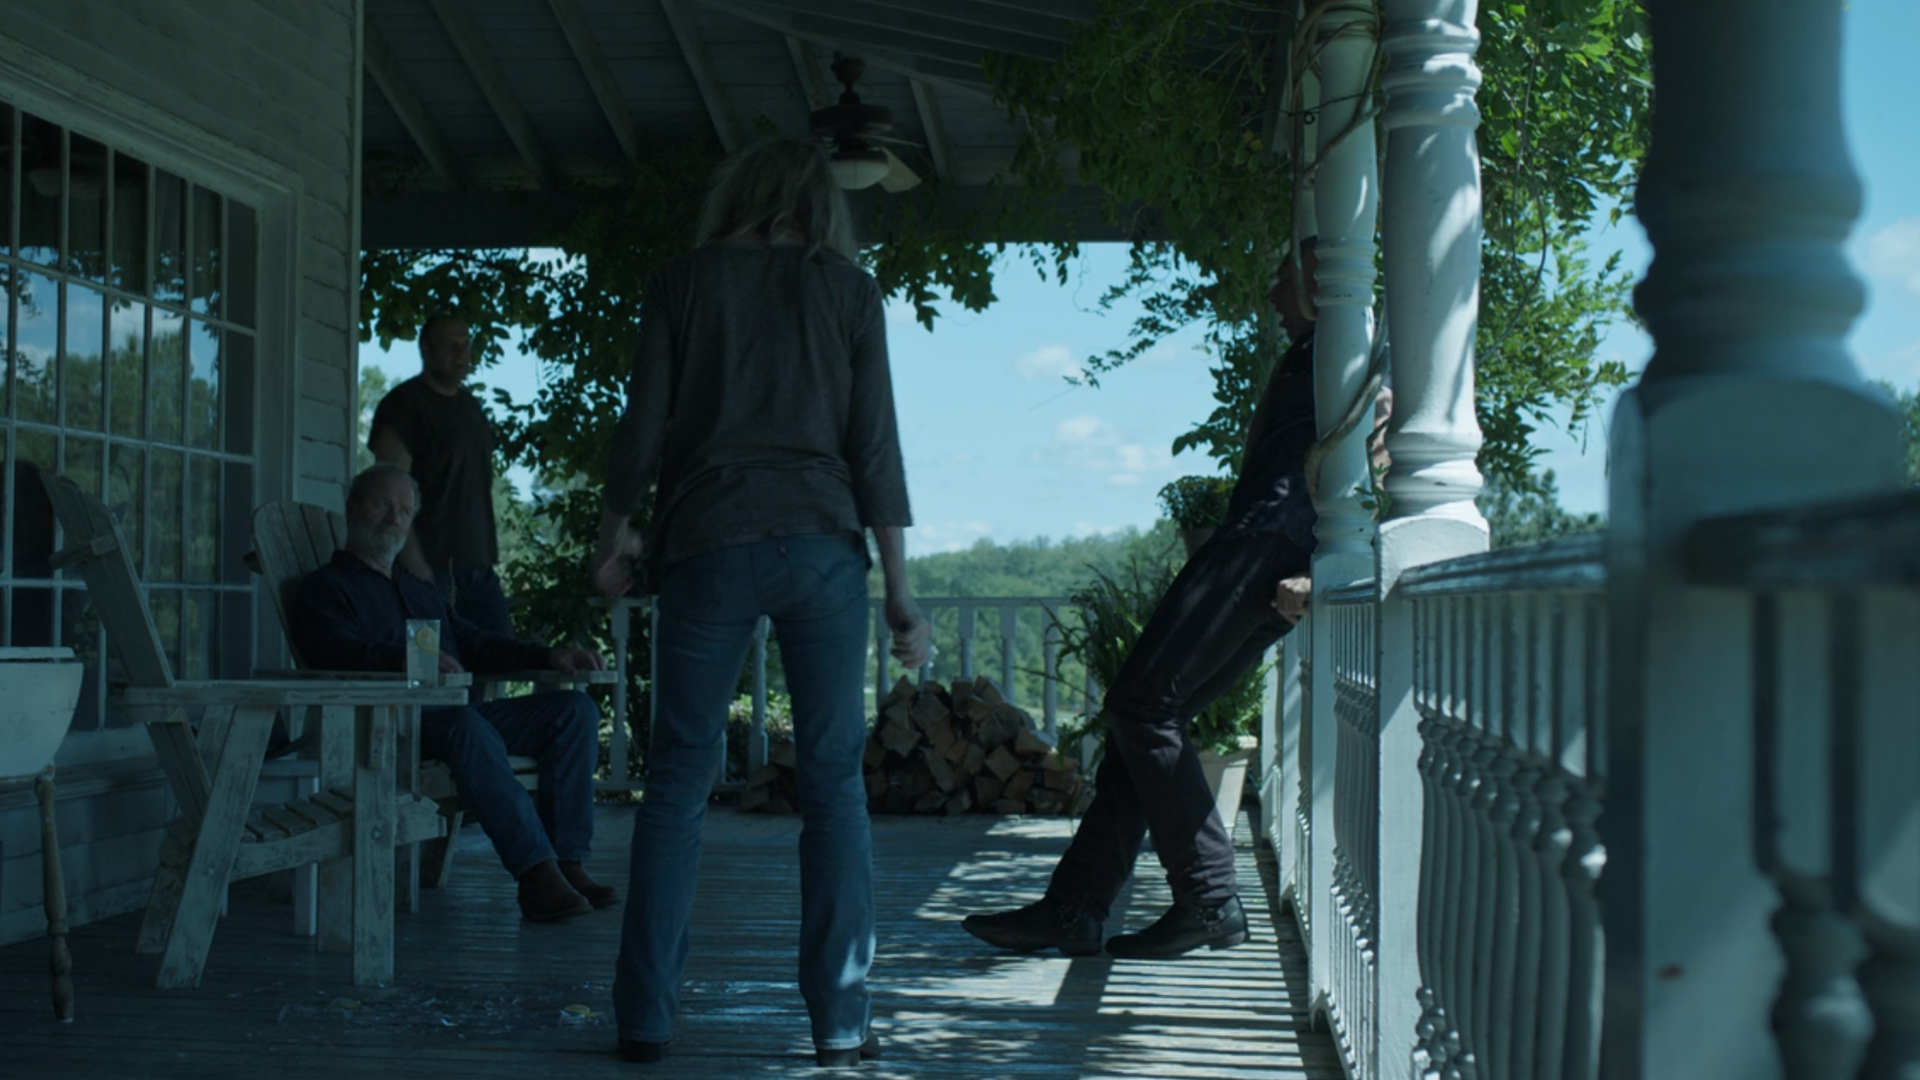 Image from the Netflix series Ozark